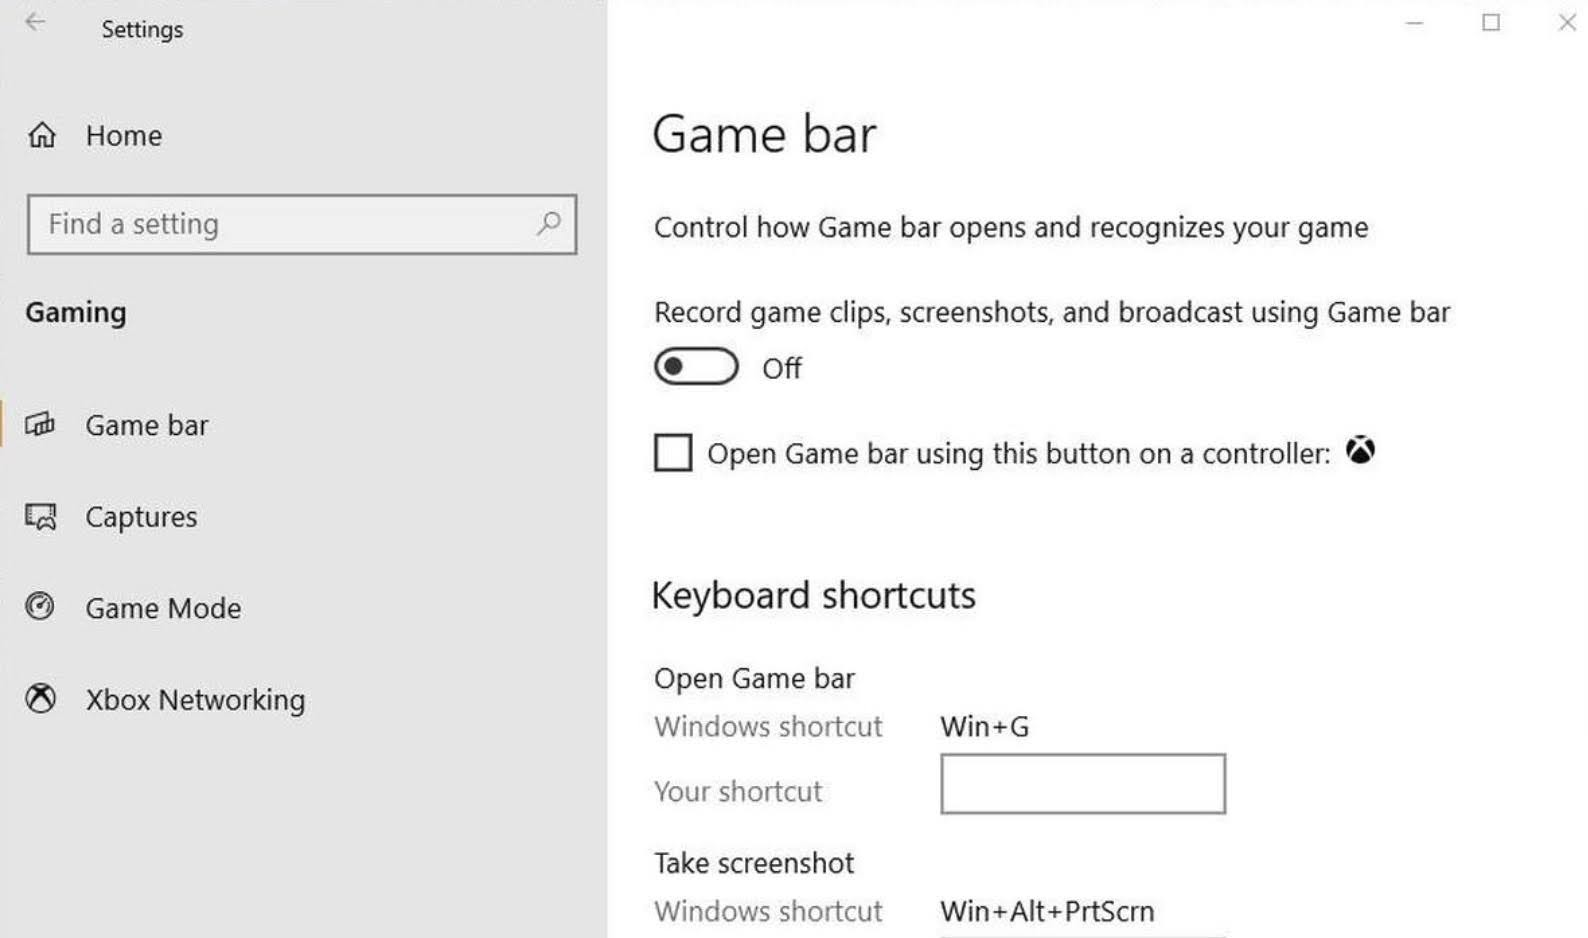 In the Game Bar settings window, toggle the Game Bar to Off status.